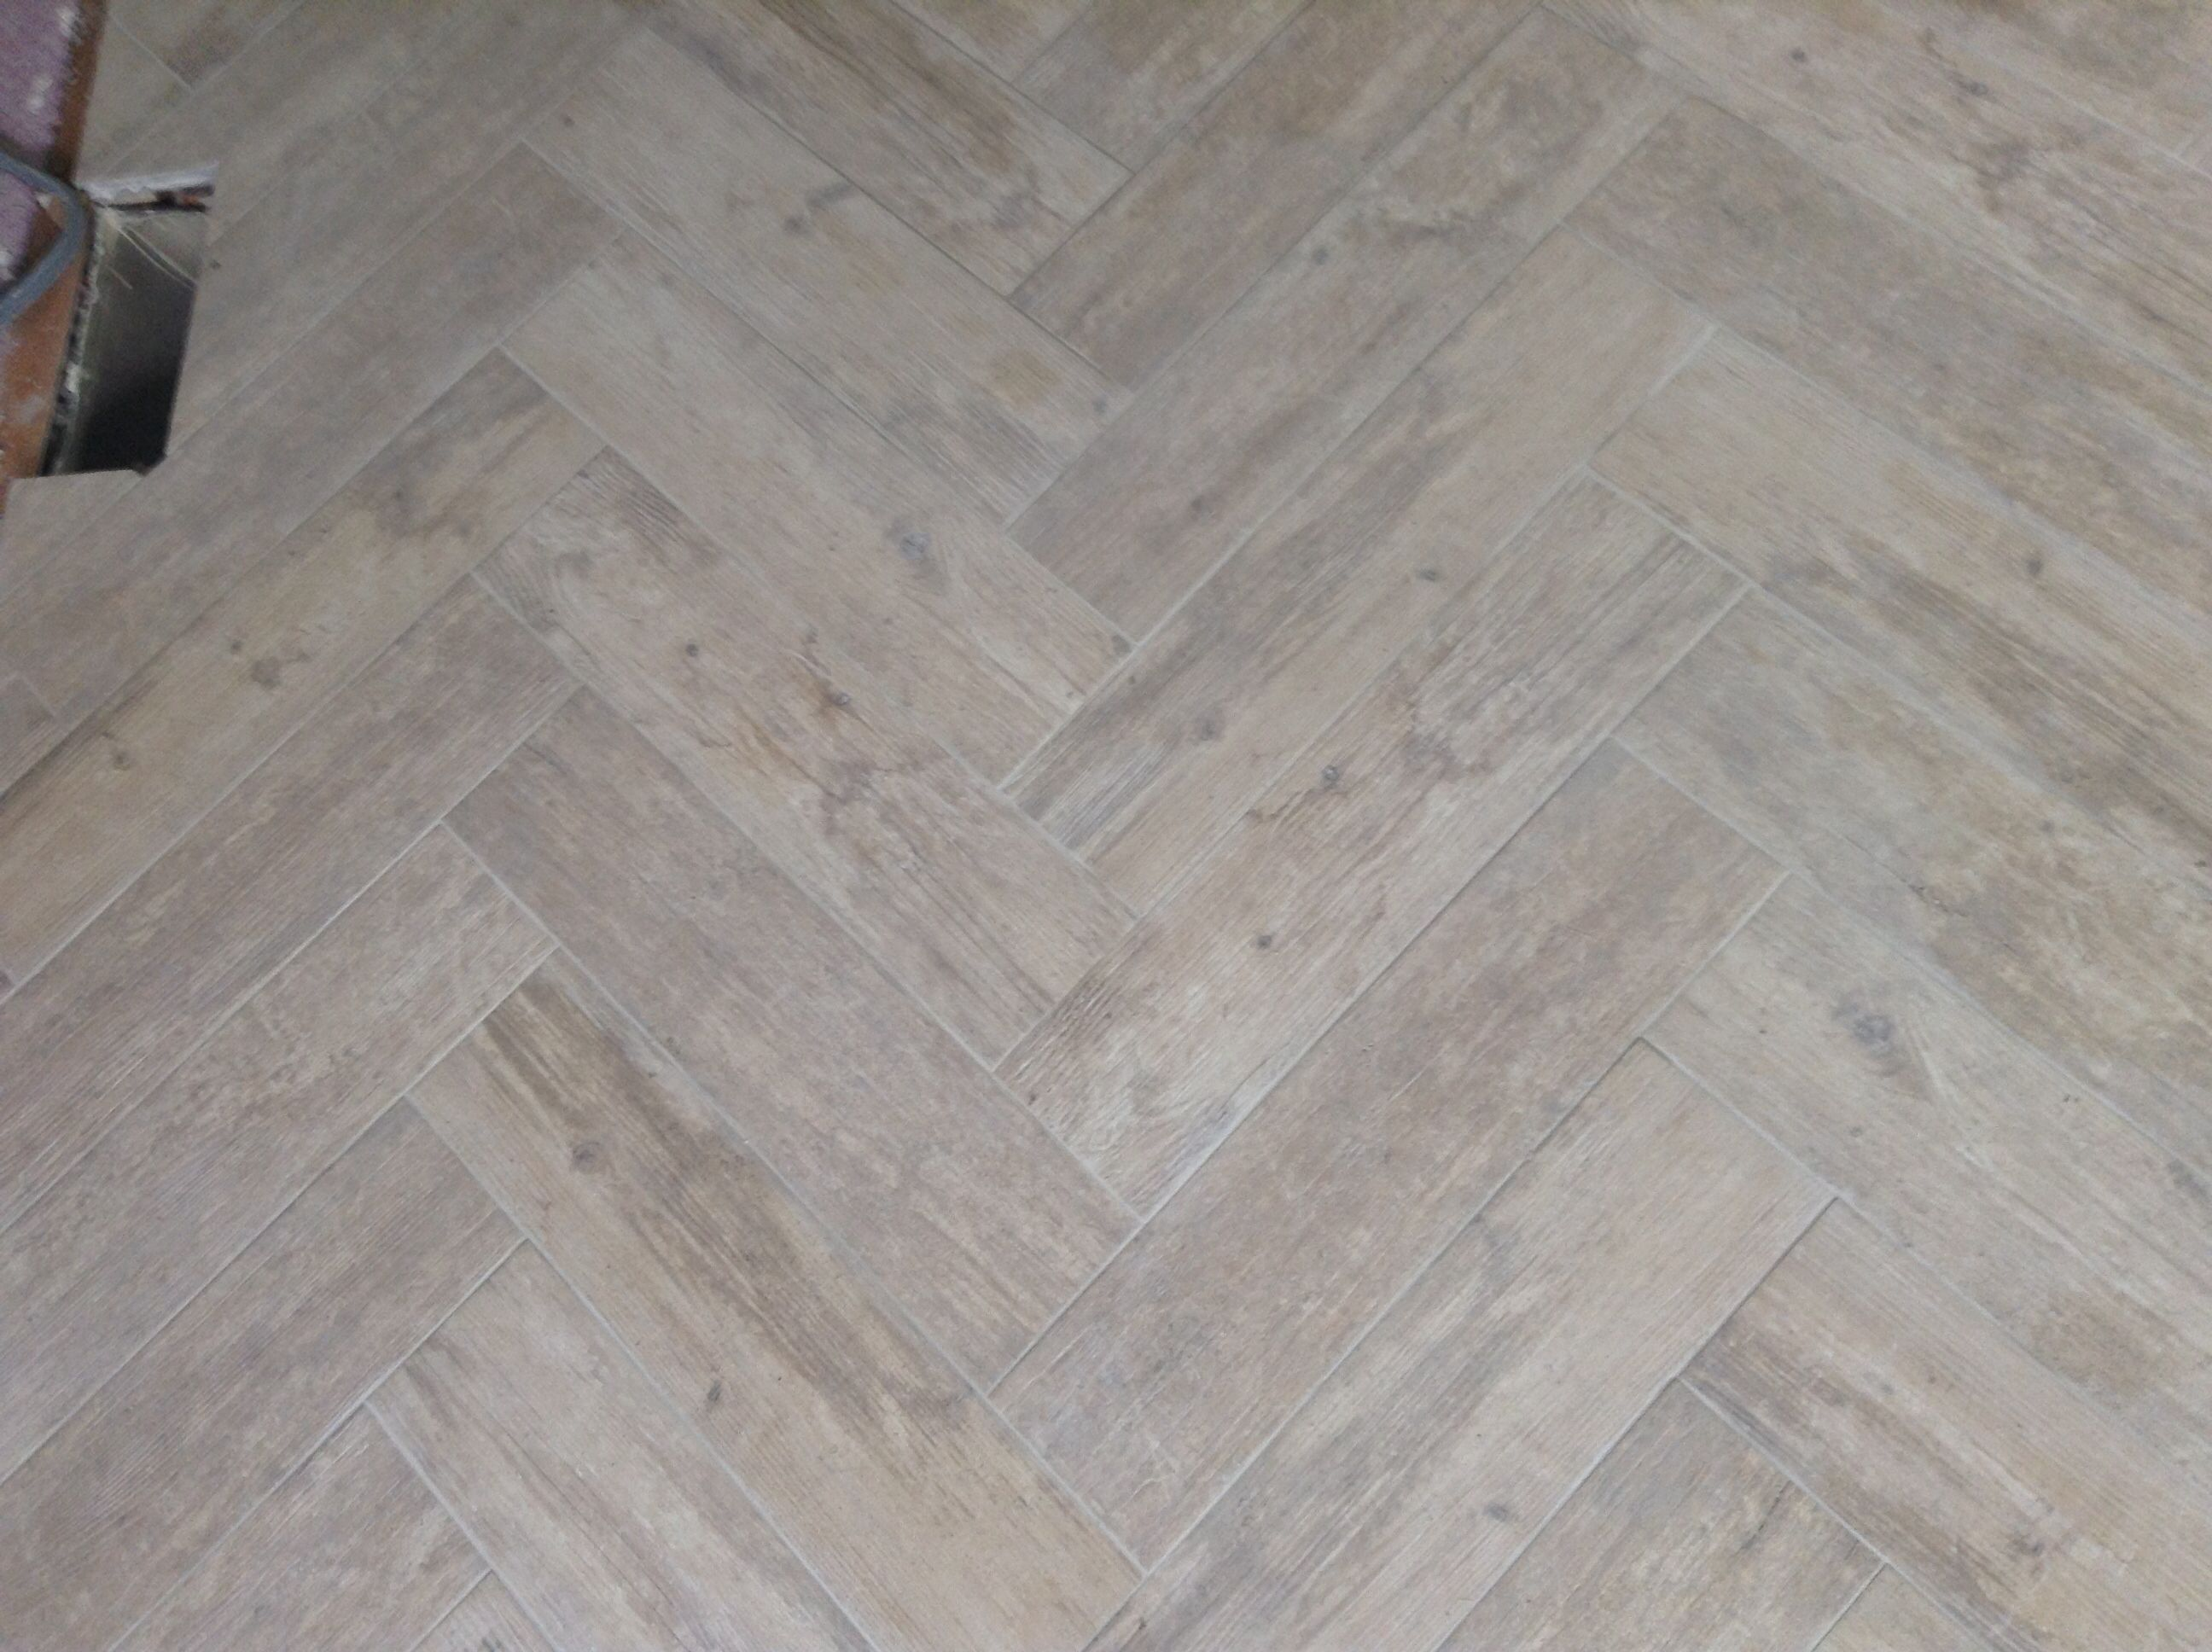 Kitchen floor chevron porcelain wood tile Oyster gray grout from